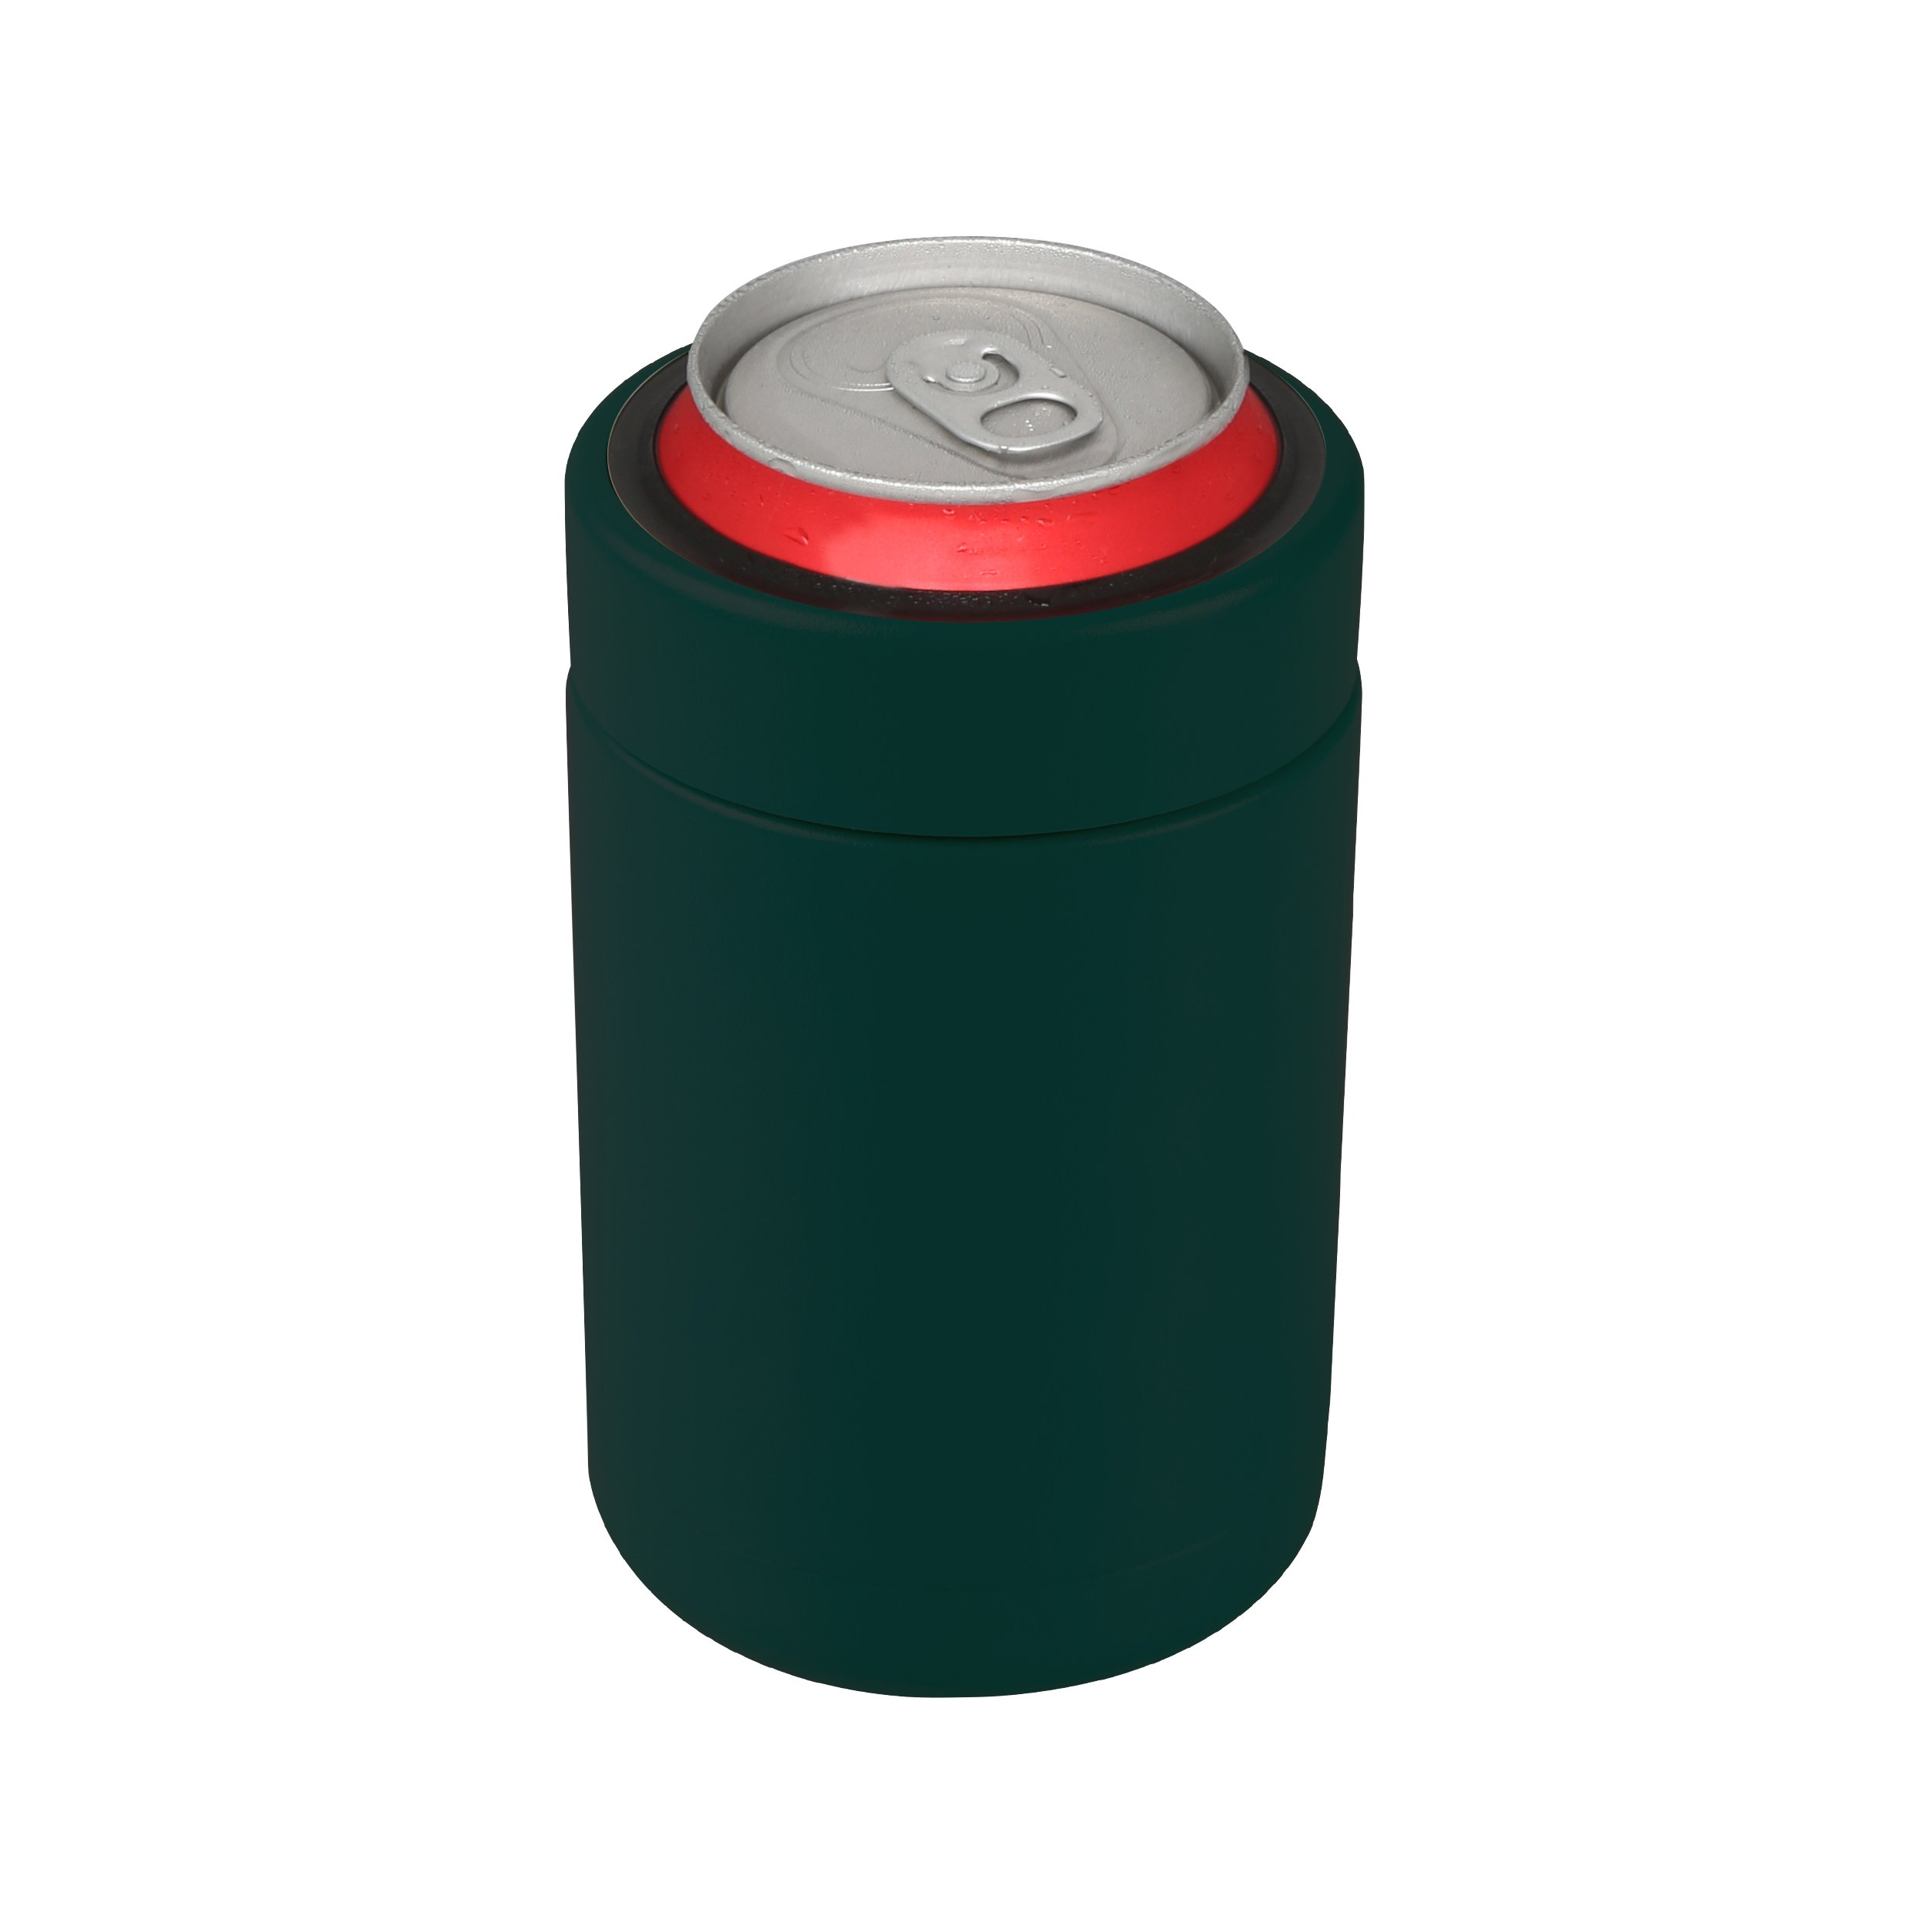 Tahoe Trails 12 oz Stainless Steel Double Wall Vacuum Insulated Can Cooler (dark green) by Tahoe Trails (Image #4)